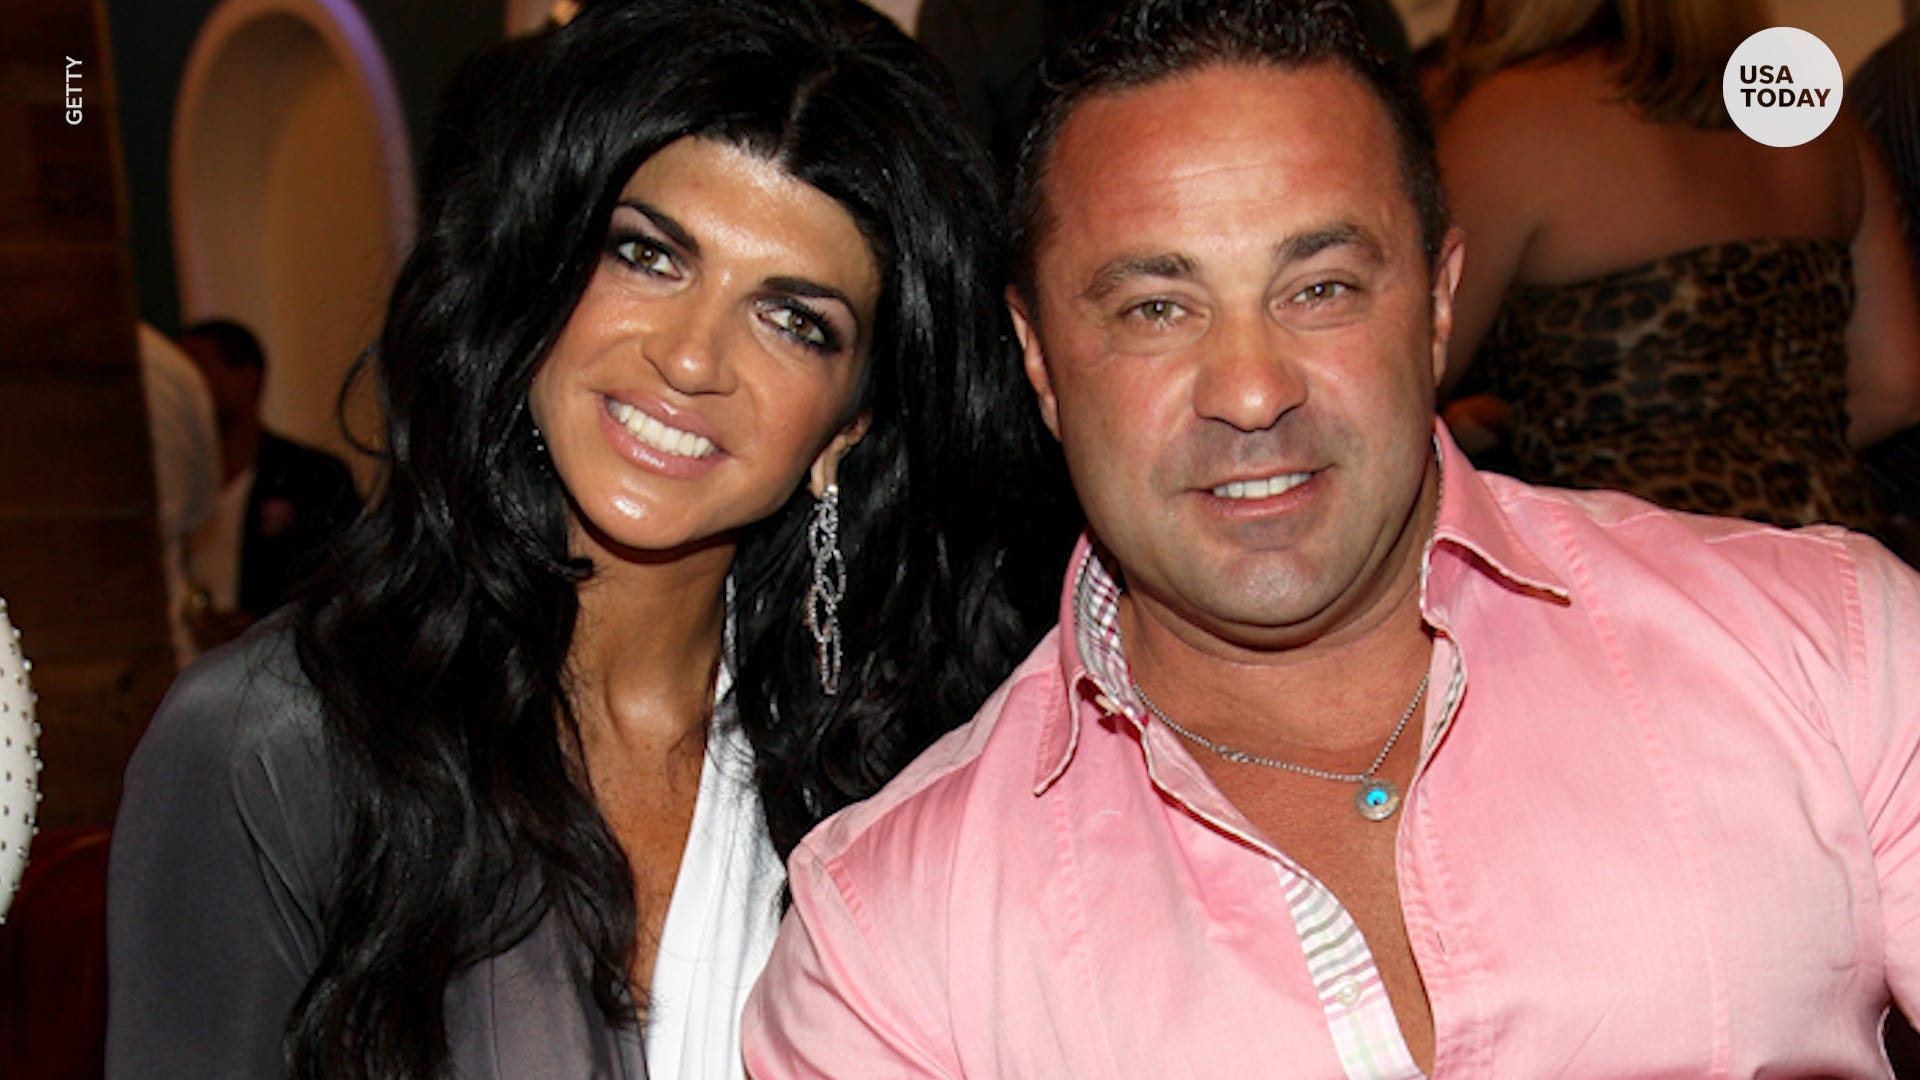 Joe Giudice of  Real Housewives of New Jersey  shares update on the coronavirus outbreak in Italy